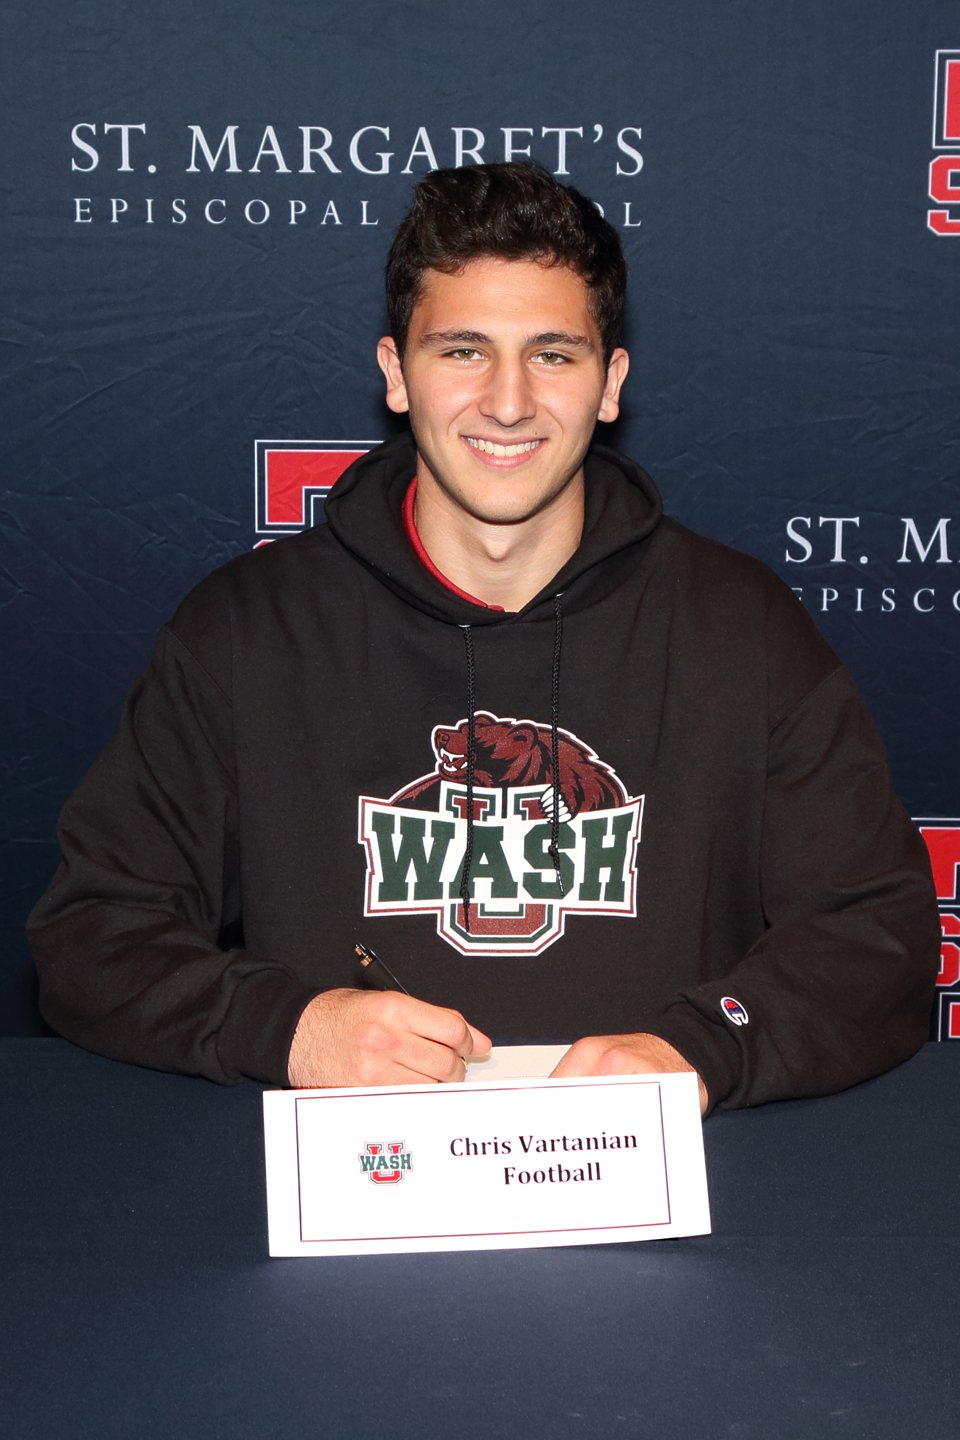 STMargarets_Chris_Vartanian_Washington_U_SL_Football2